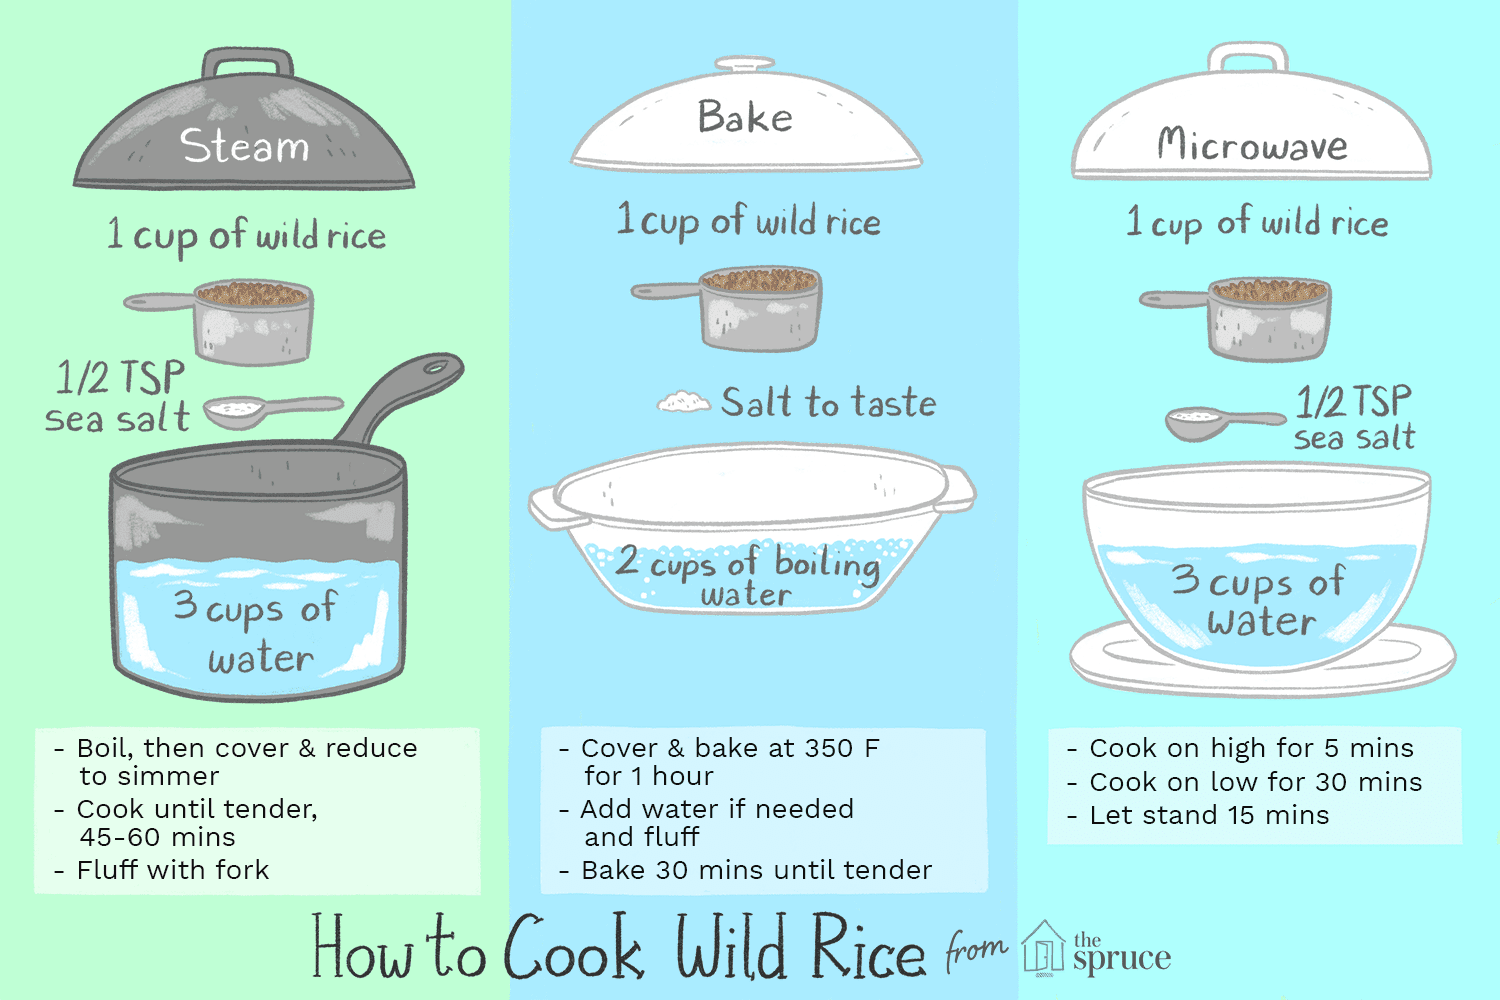 How to cook wild rice illustration